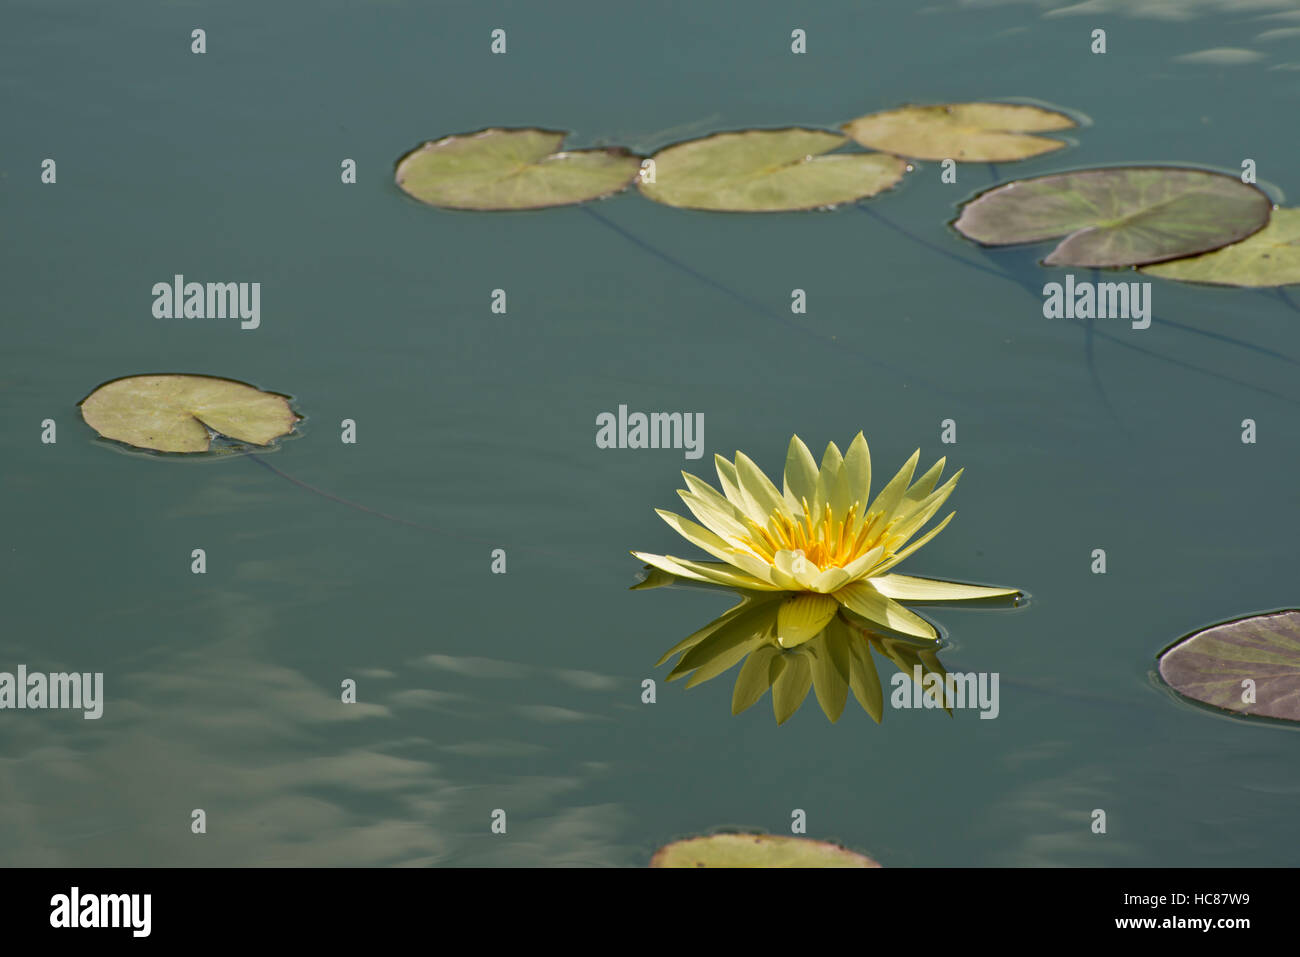 Photograph of yellow waterlilies and lily pads in a pond. - Stock Image